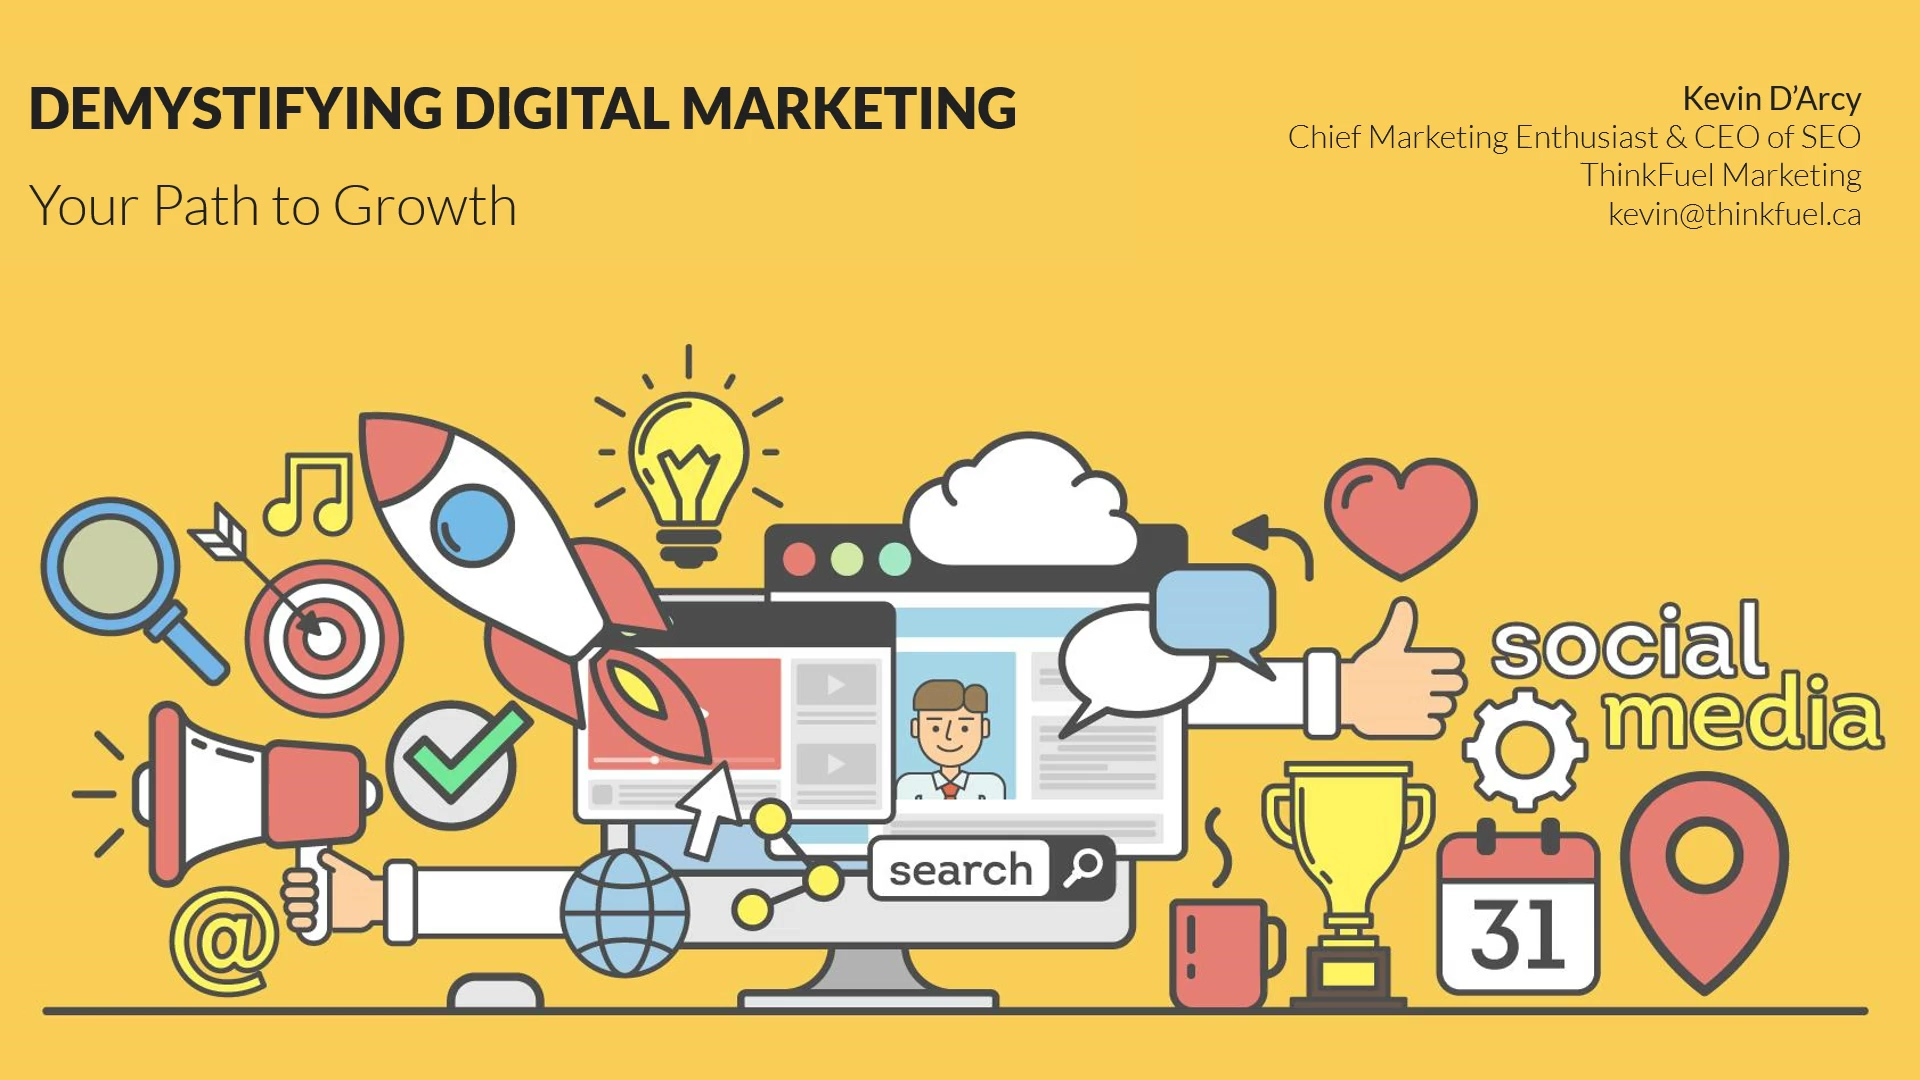 Demystifying Digital Marketing